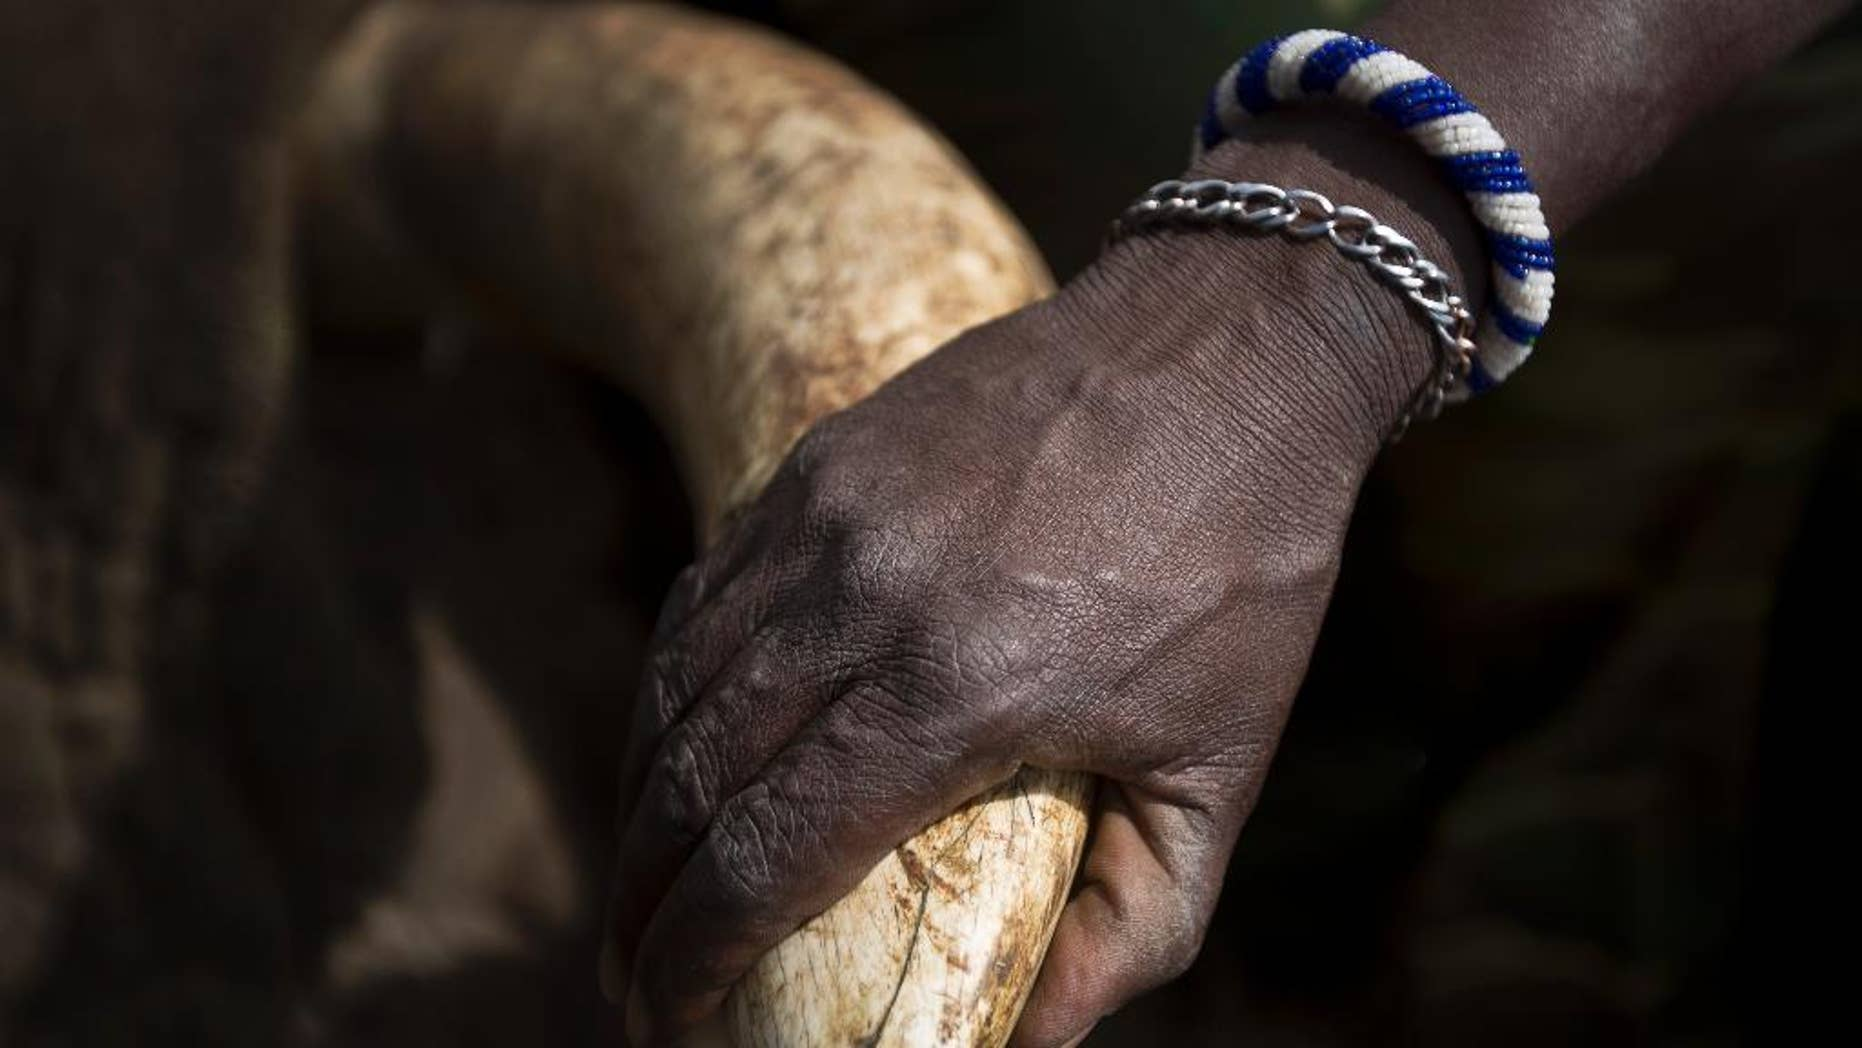 FILE - In this Tuesday, Dec. 3, 2013 file photo, a local Maasai tribesman places his hand on the tusk of a tranquilized wild elephant during an anti-poaching elephant-collaring operation near Kajiado, in southern Kenya. China imposed a one-year ban on ivory imports that took immediate effect, on Thursday, Feb. 26, 2015, amid criticism that its citizens' huge appetite for ivory has fueled poaching that threatens the existence of African elephants. (AP Photo/Ben Curtis, File)